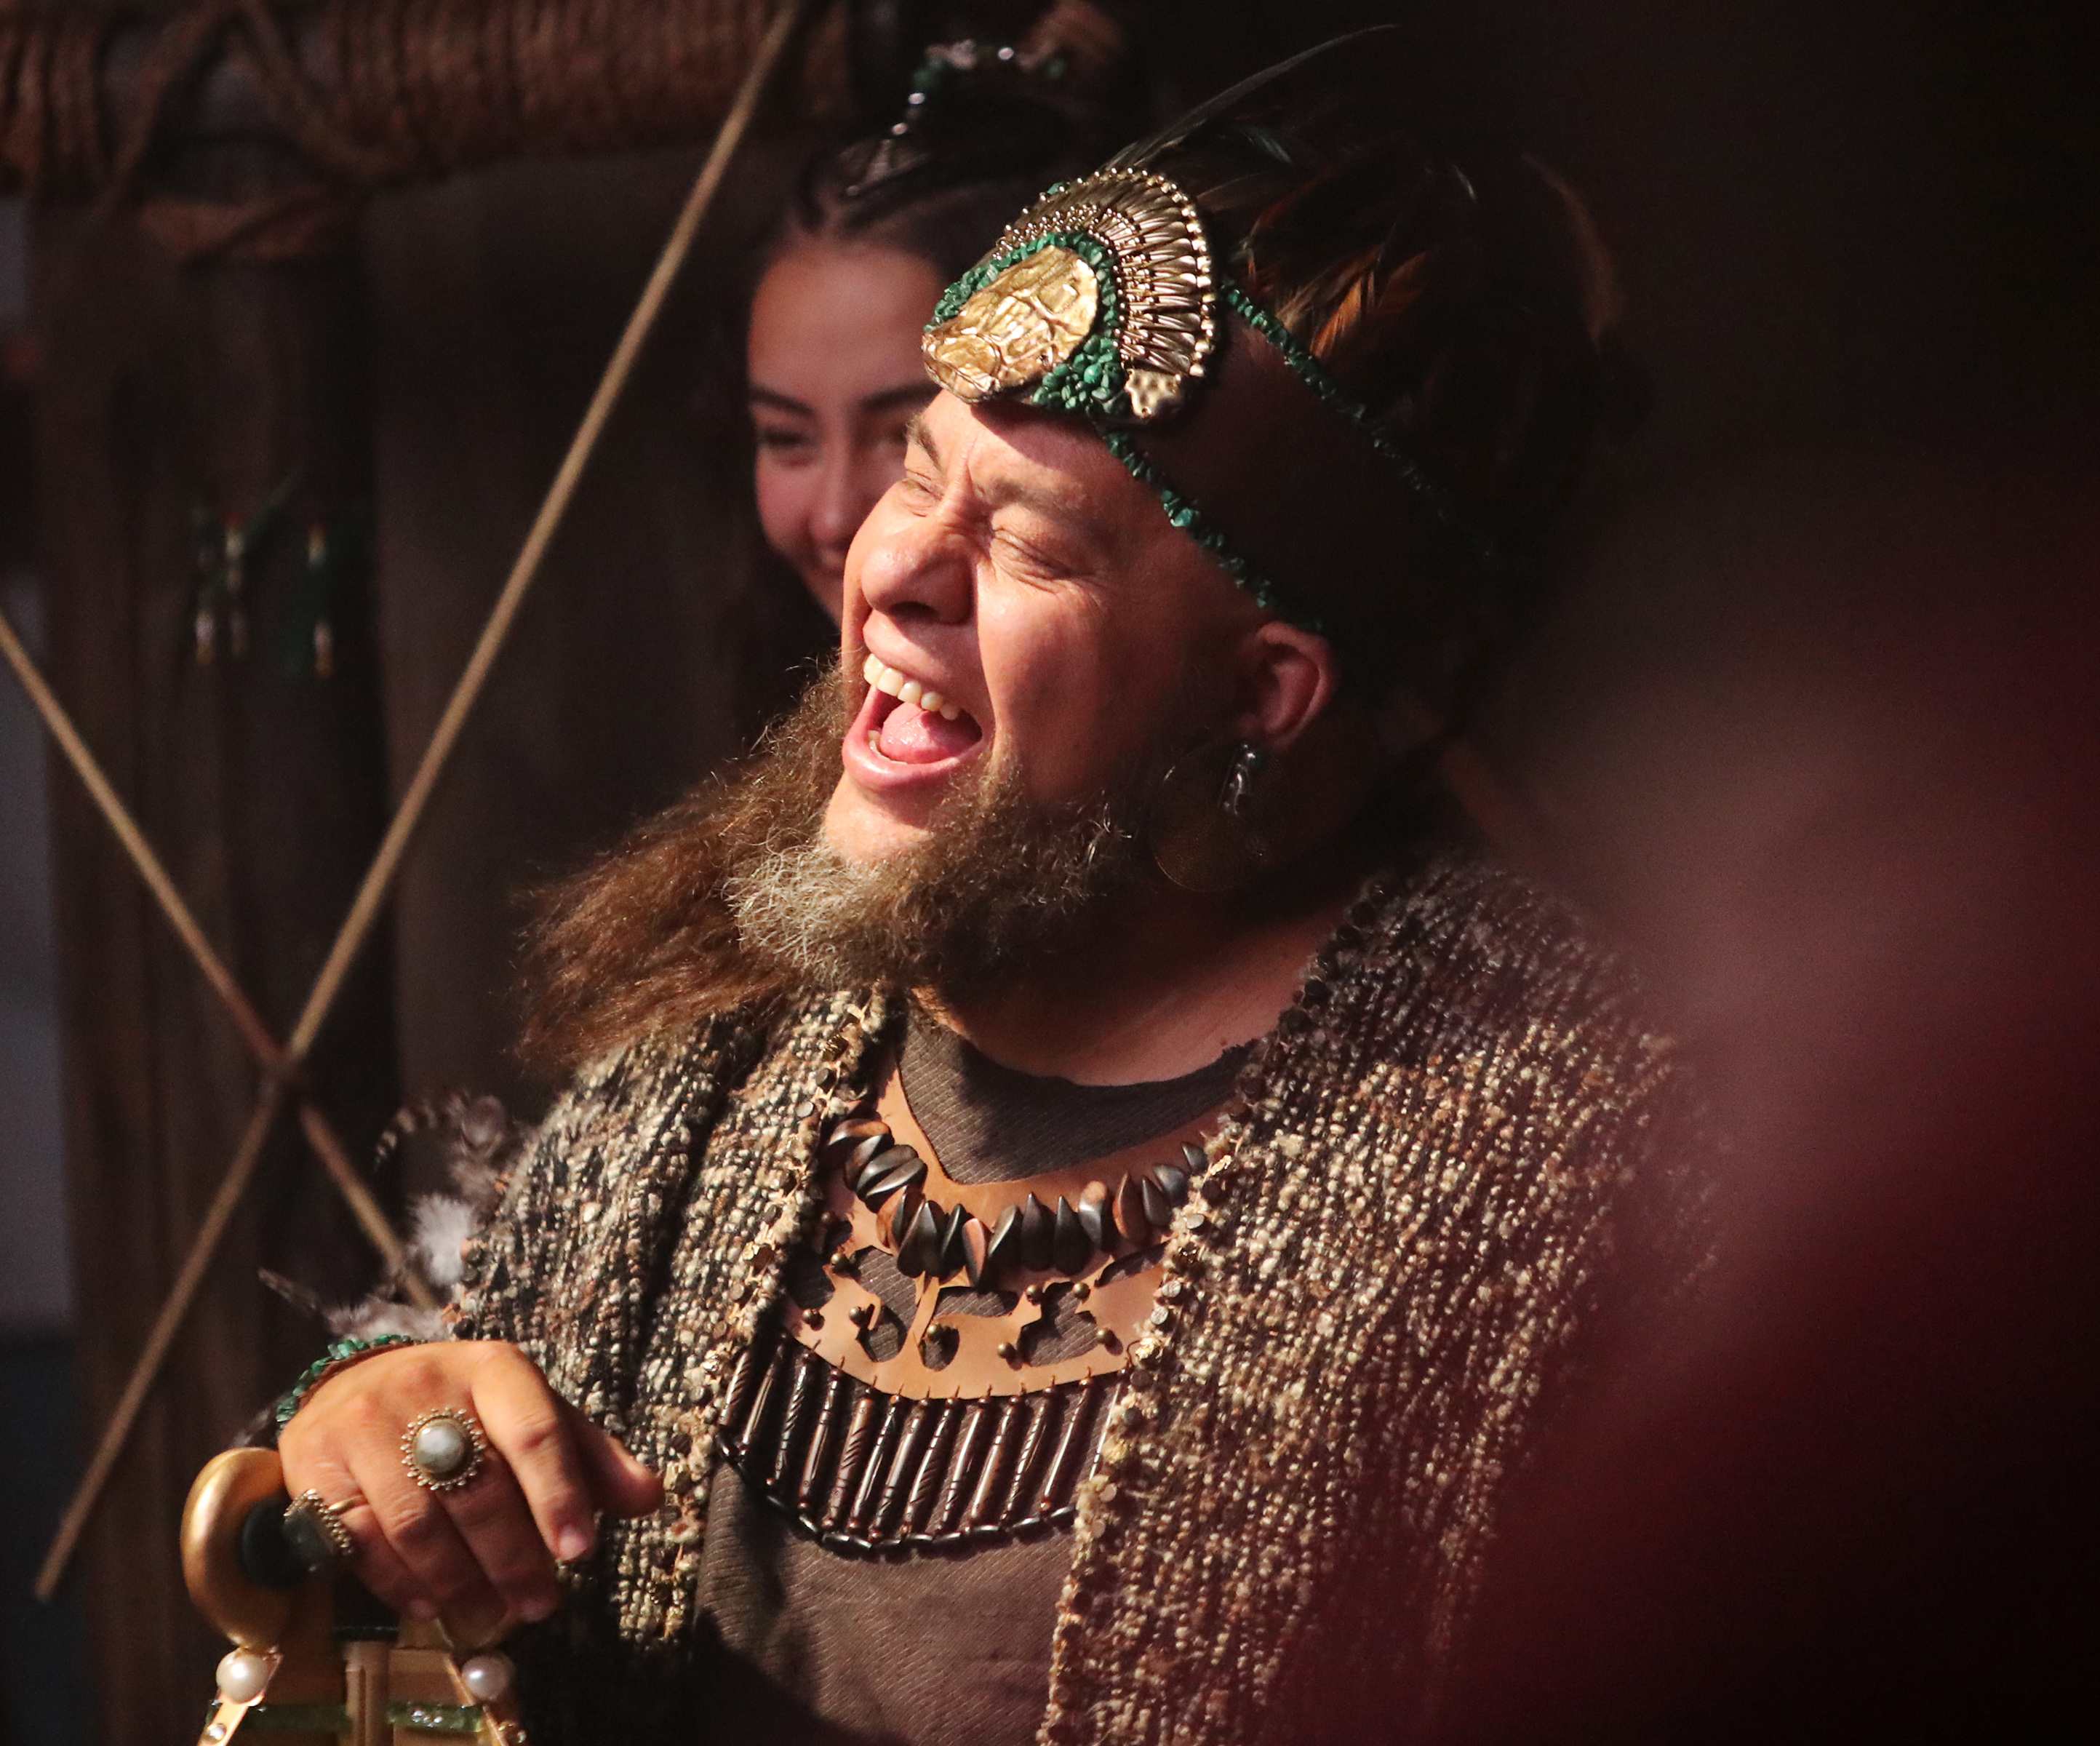 An actor playing King Noah laughs during a filming break in Provo, Utah, at the Motion Picture Studio on Tuesday, Sept. 3, 2019.